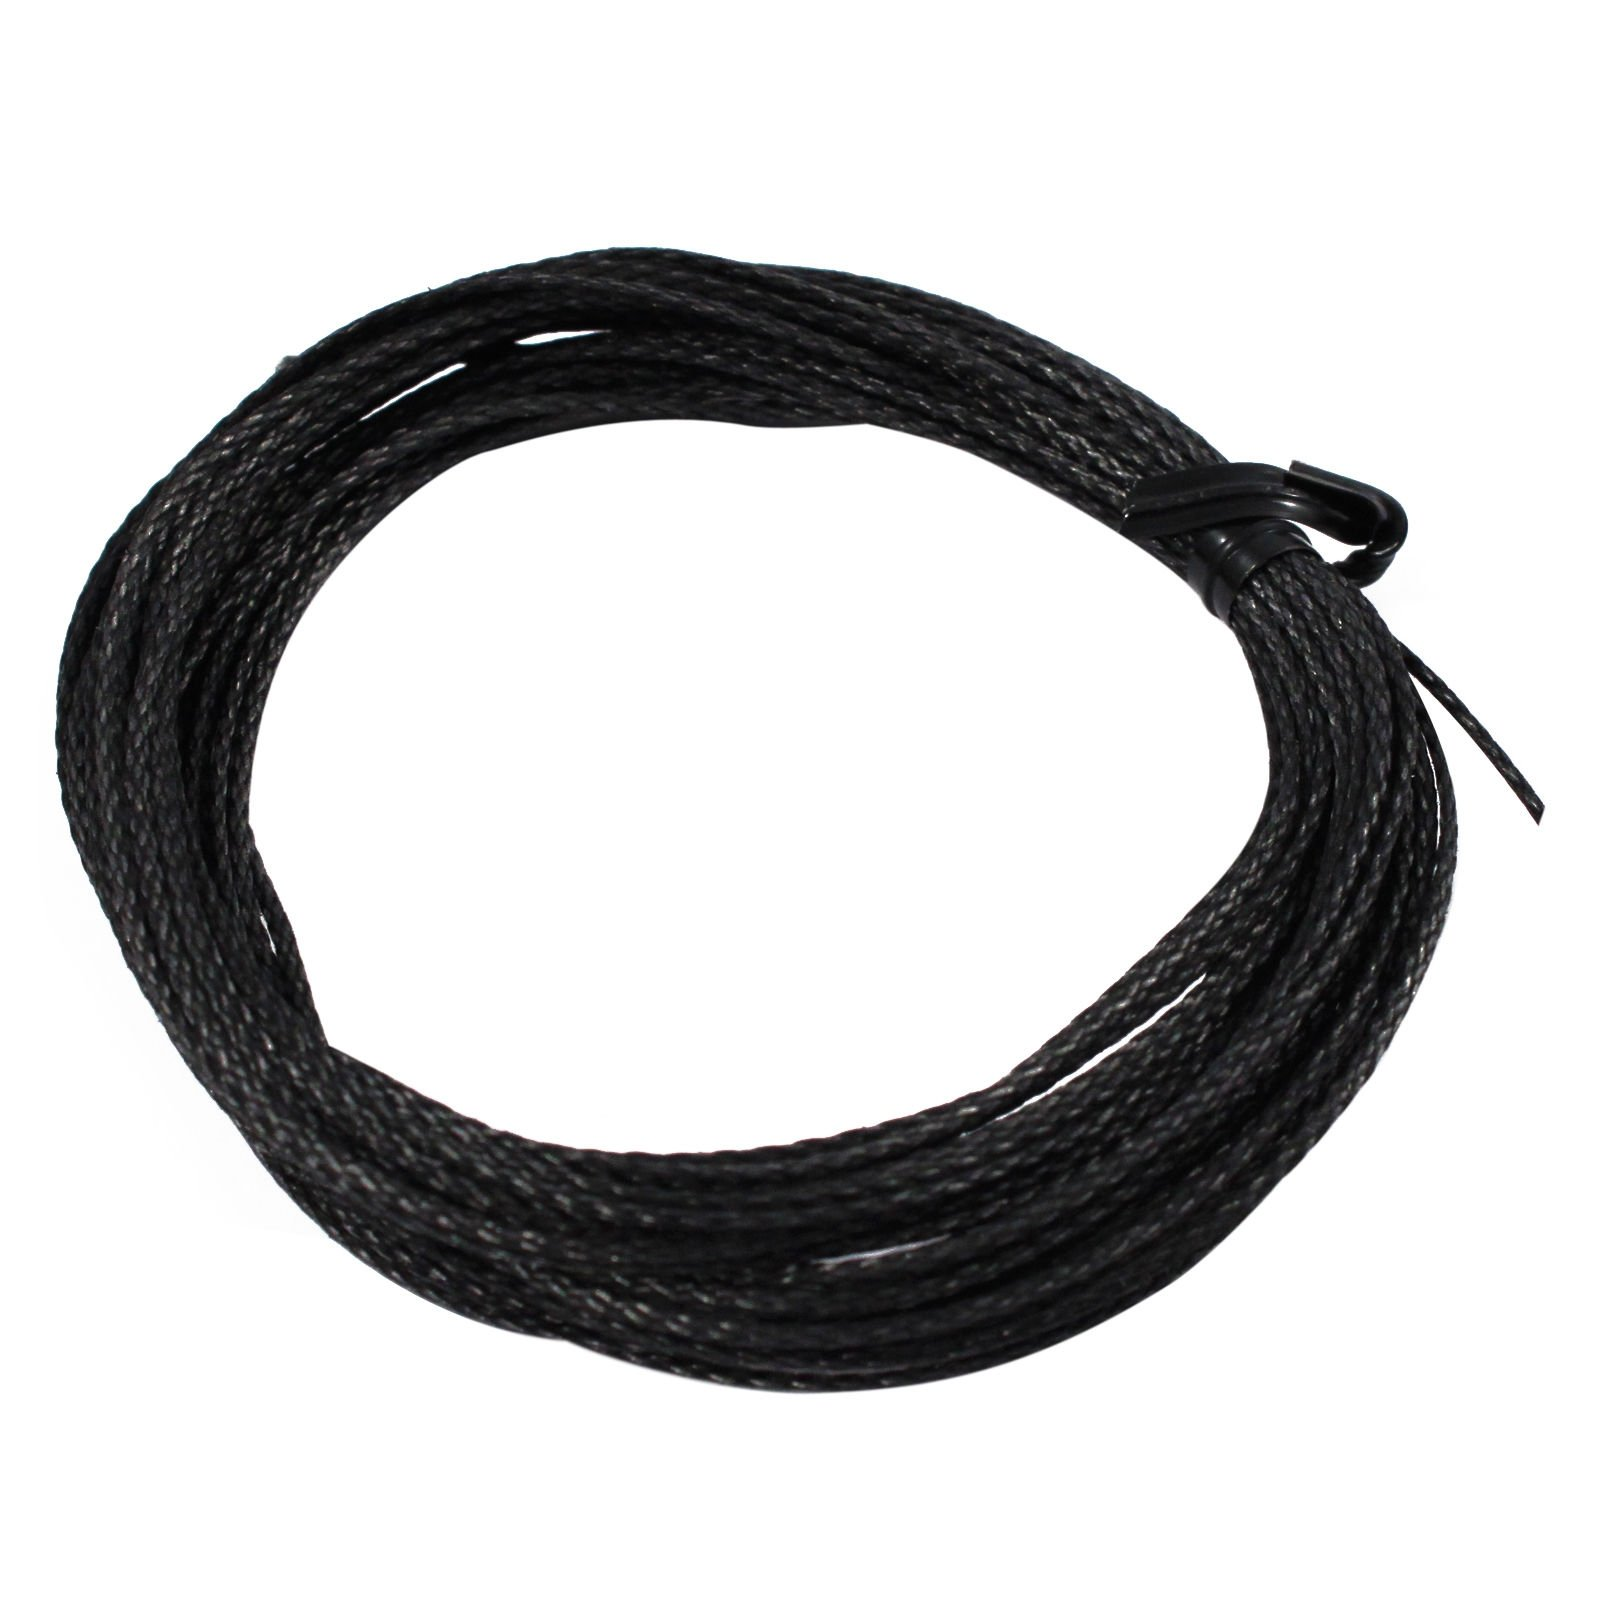 Braided Vectran Survival Sport Tactical Cord 200lb Breaking Strength - 500ft